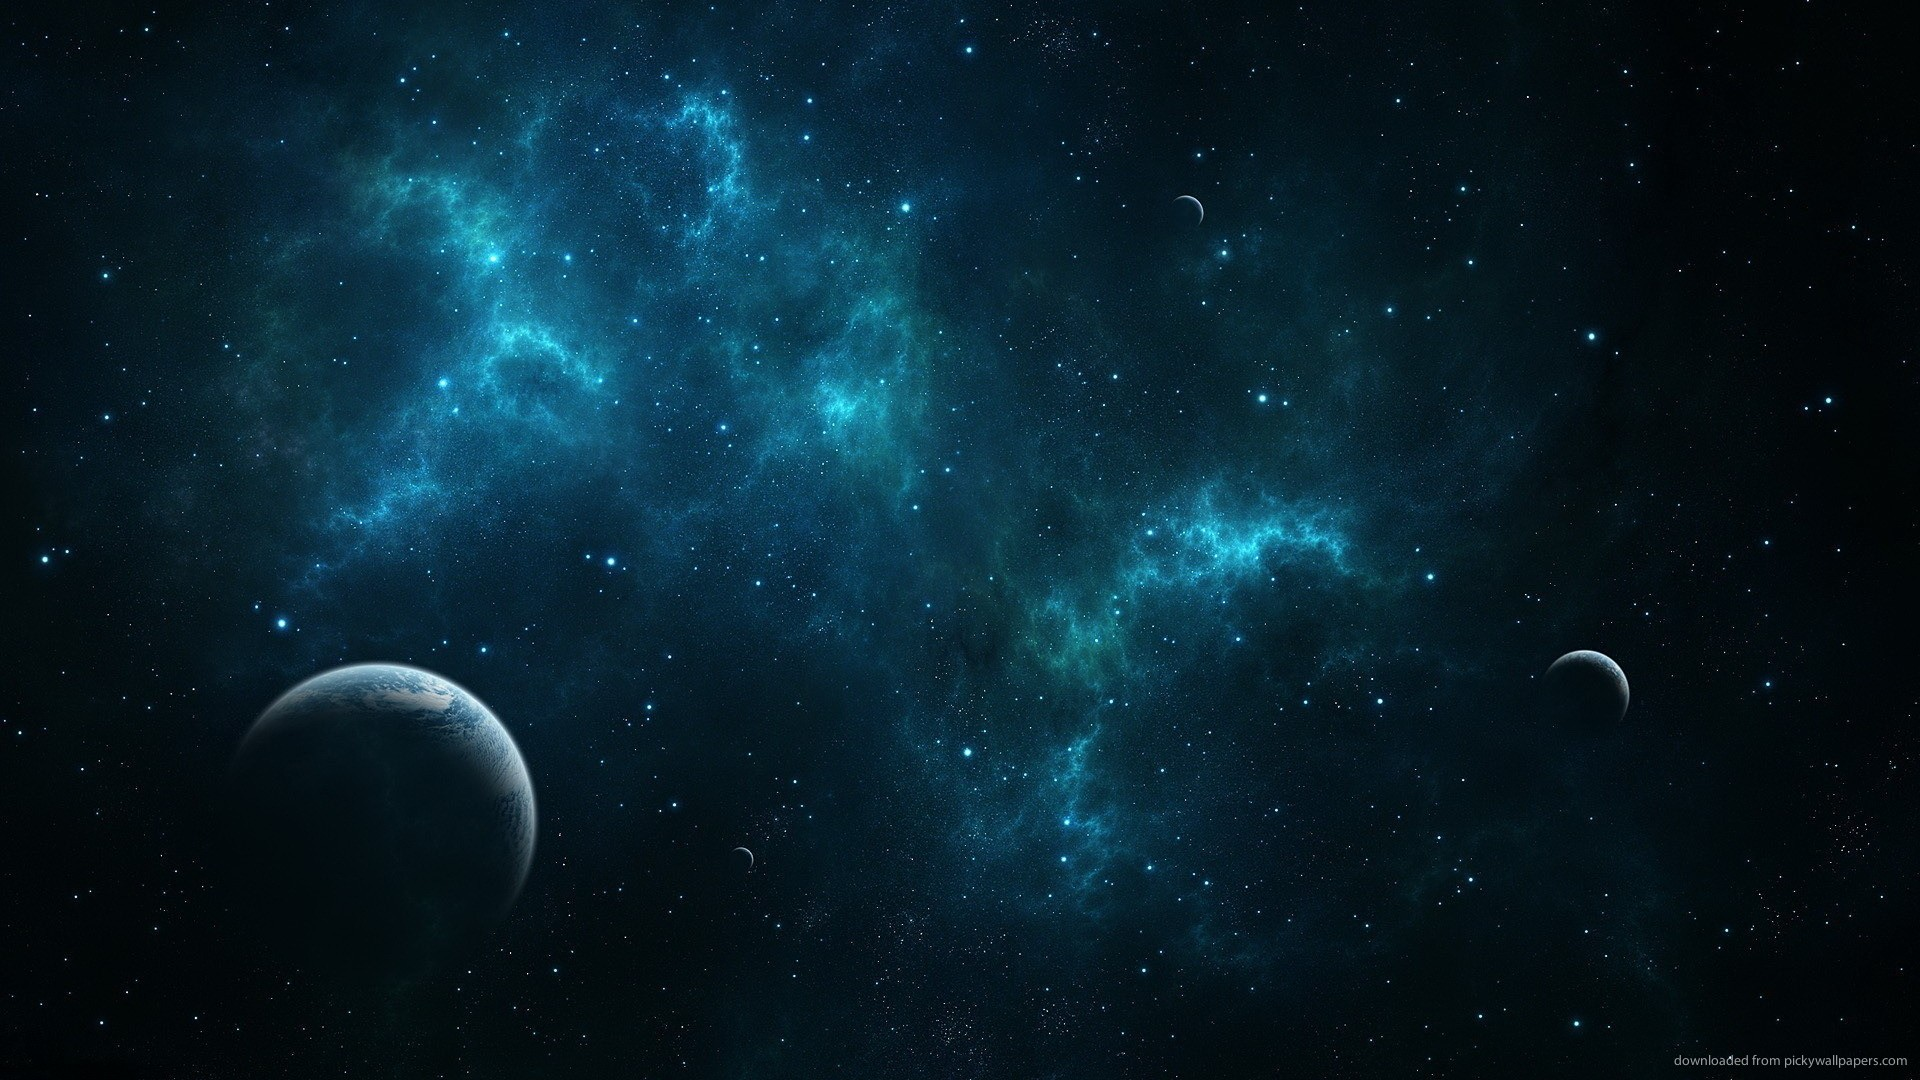 1920x1080 Deep Blue Space Wallpaper 1920x1080